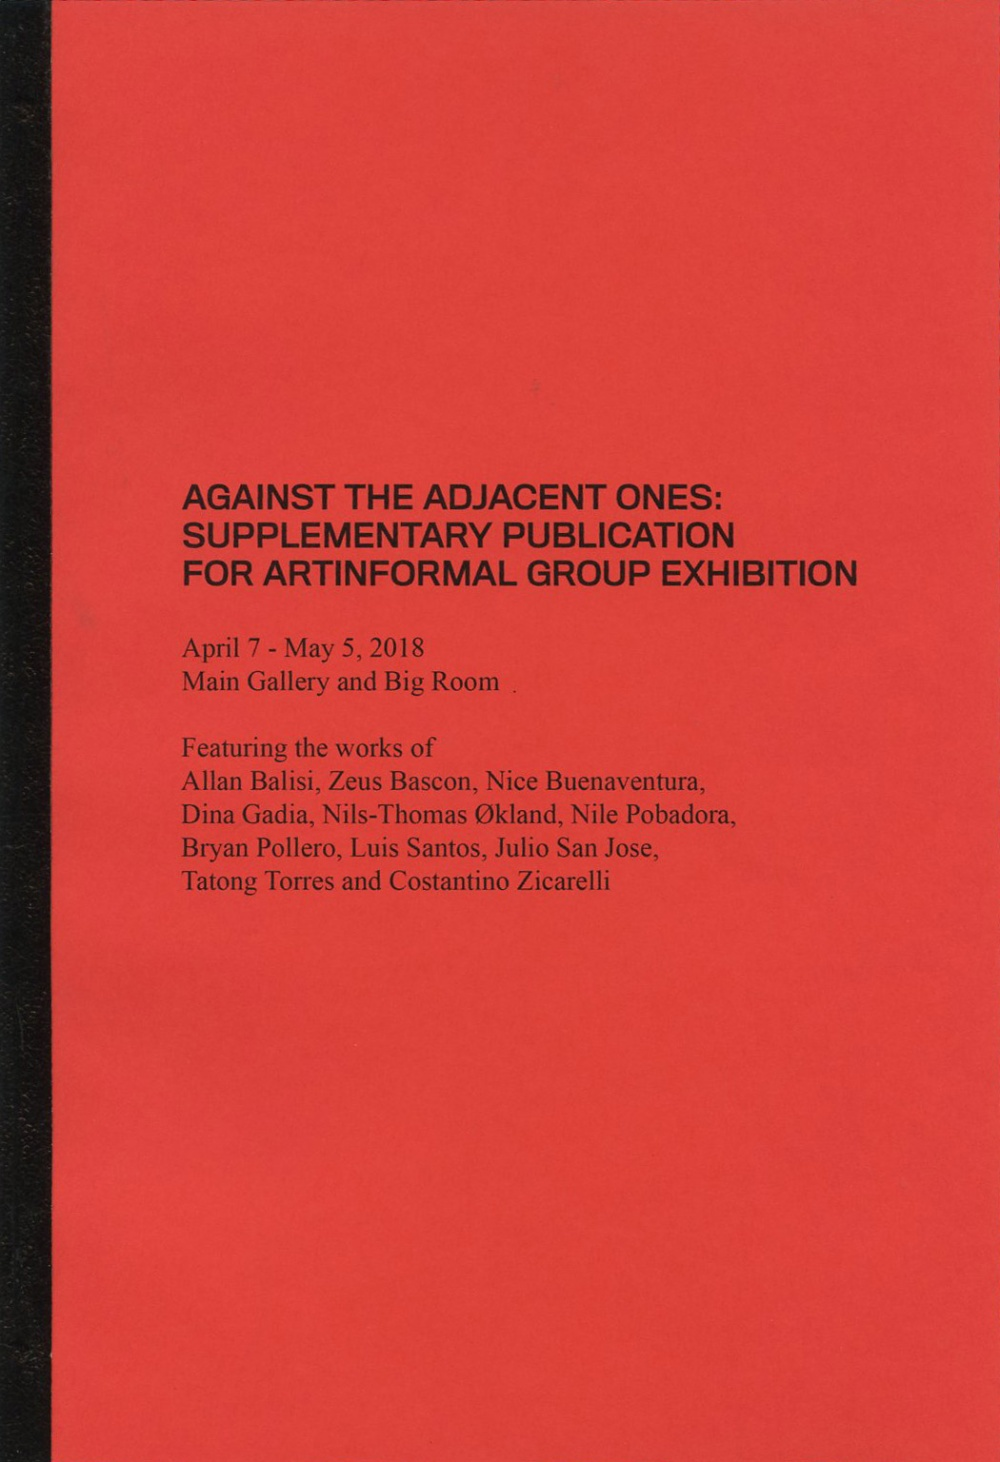 Against The Adjacent Ones: Supplemantary publication for Artinfo